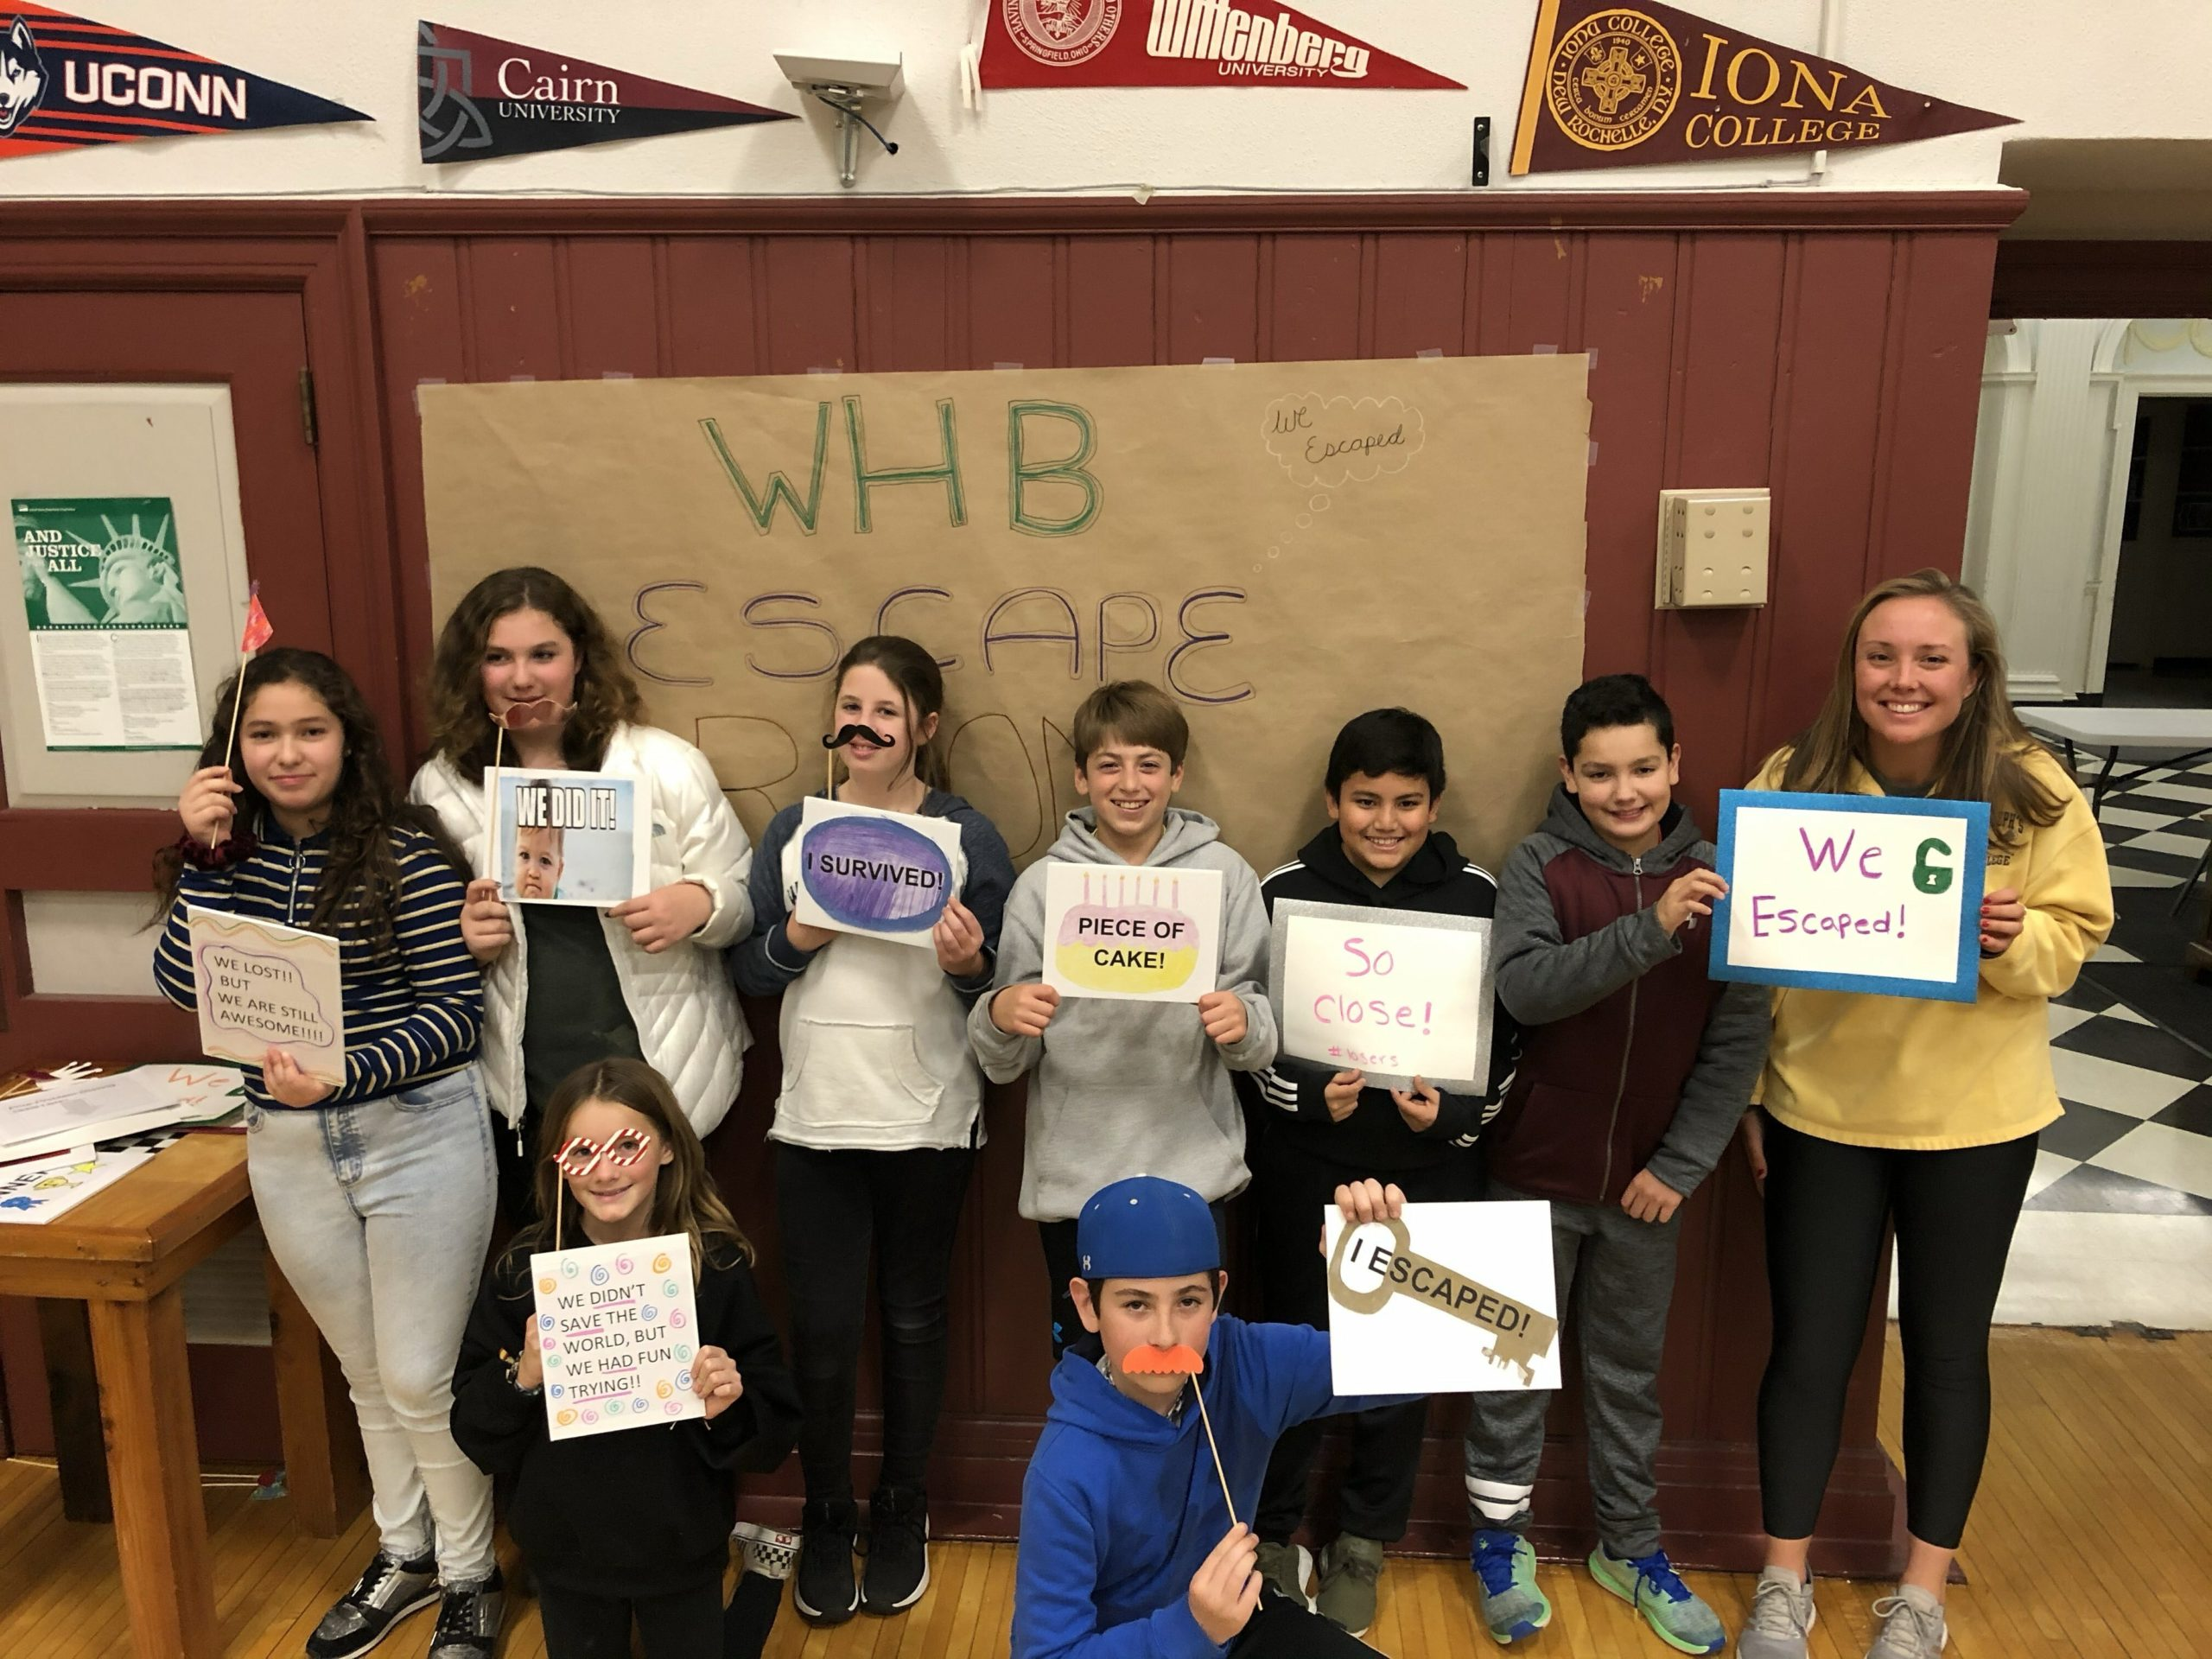 """Eighth-graders in Kelly Russell's critical literacy class at Westhampton Beach Middle School gave back to the district's Hurricane Foundation by organizing an escape room fundraiser on December 3. The inspiration for the event began in seventh grade, when the students learned about the United Nations Messengers of Peace program as part of their curriculum. Expanding on the lesson this year, they decided to organize a fundraiser for which they designed an escape room around the theme of """"evil science lab."""" Participants were given clues and moved through 10 rooms to solve riddles, find a blueprint and race back to the school's cafeteria to crack the final code. The event also included a student-run bake sale and a photo booth featuring various props, ultimately raising more than $800."""